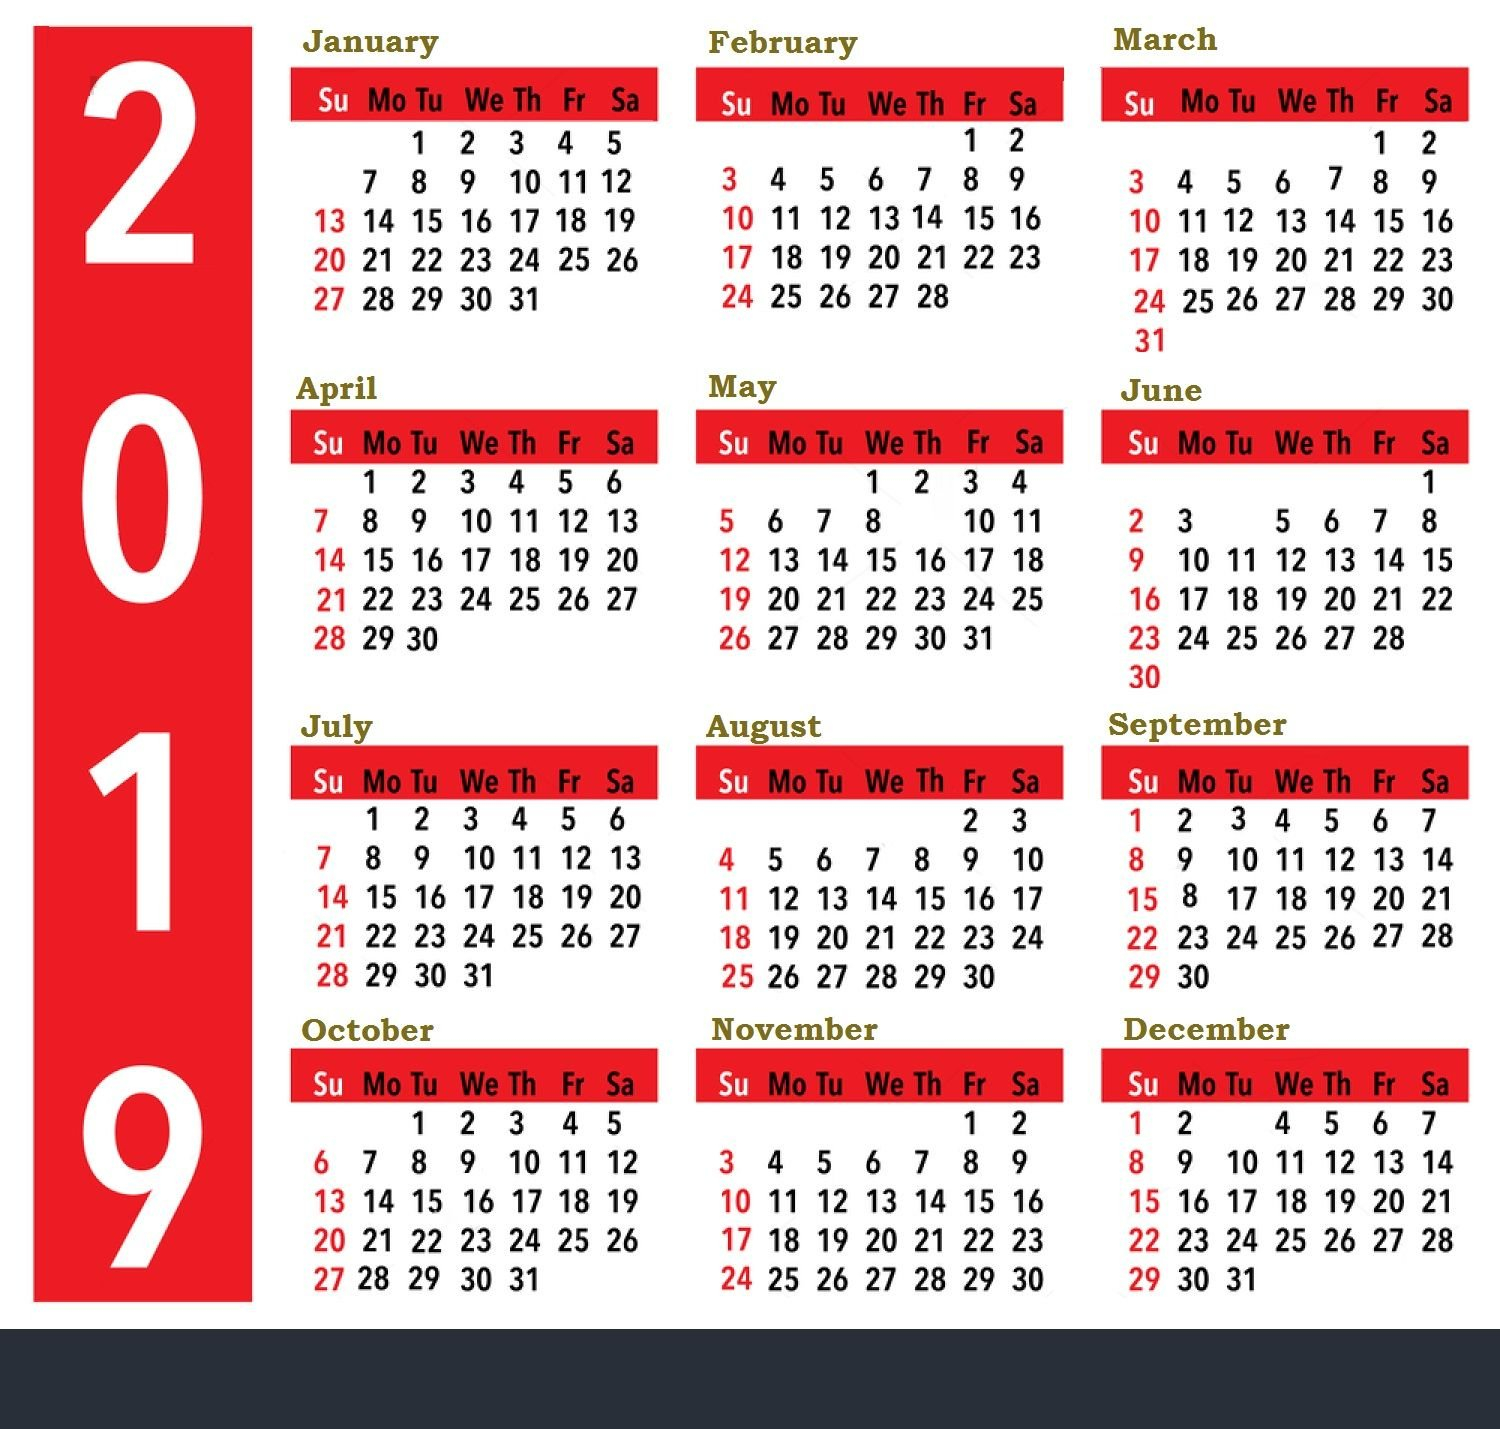 2019 Calendar For United States Holidays All Important Dates And Calendar 2019 All Holidays